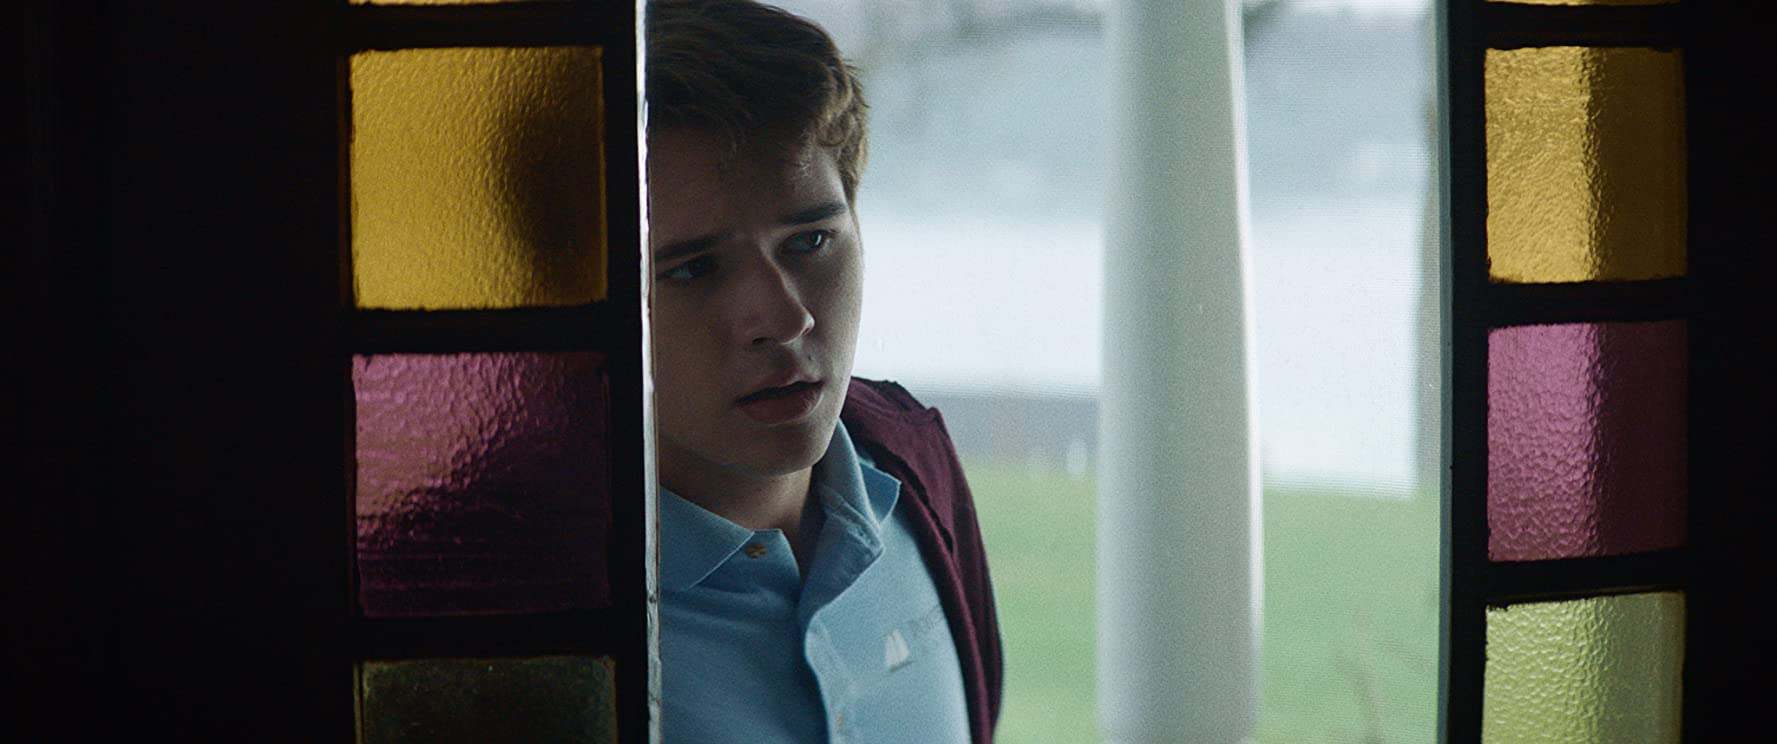 John-Paul Howard in The Wretched (2019)